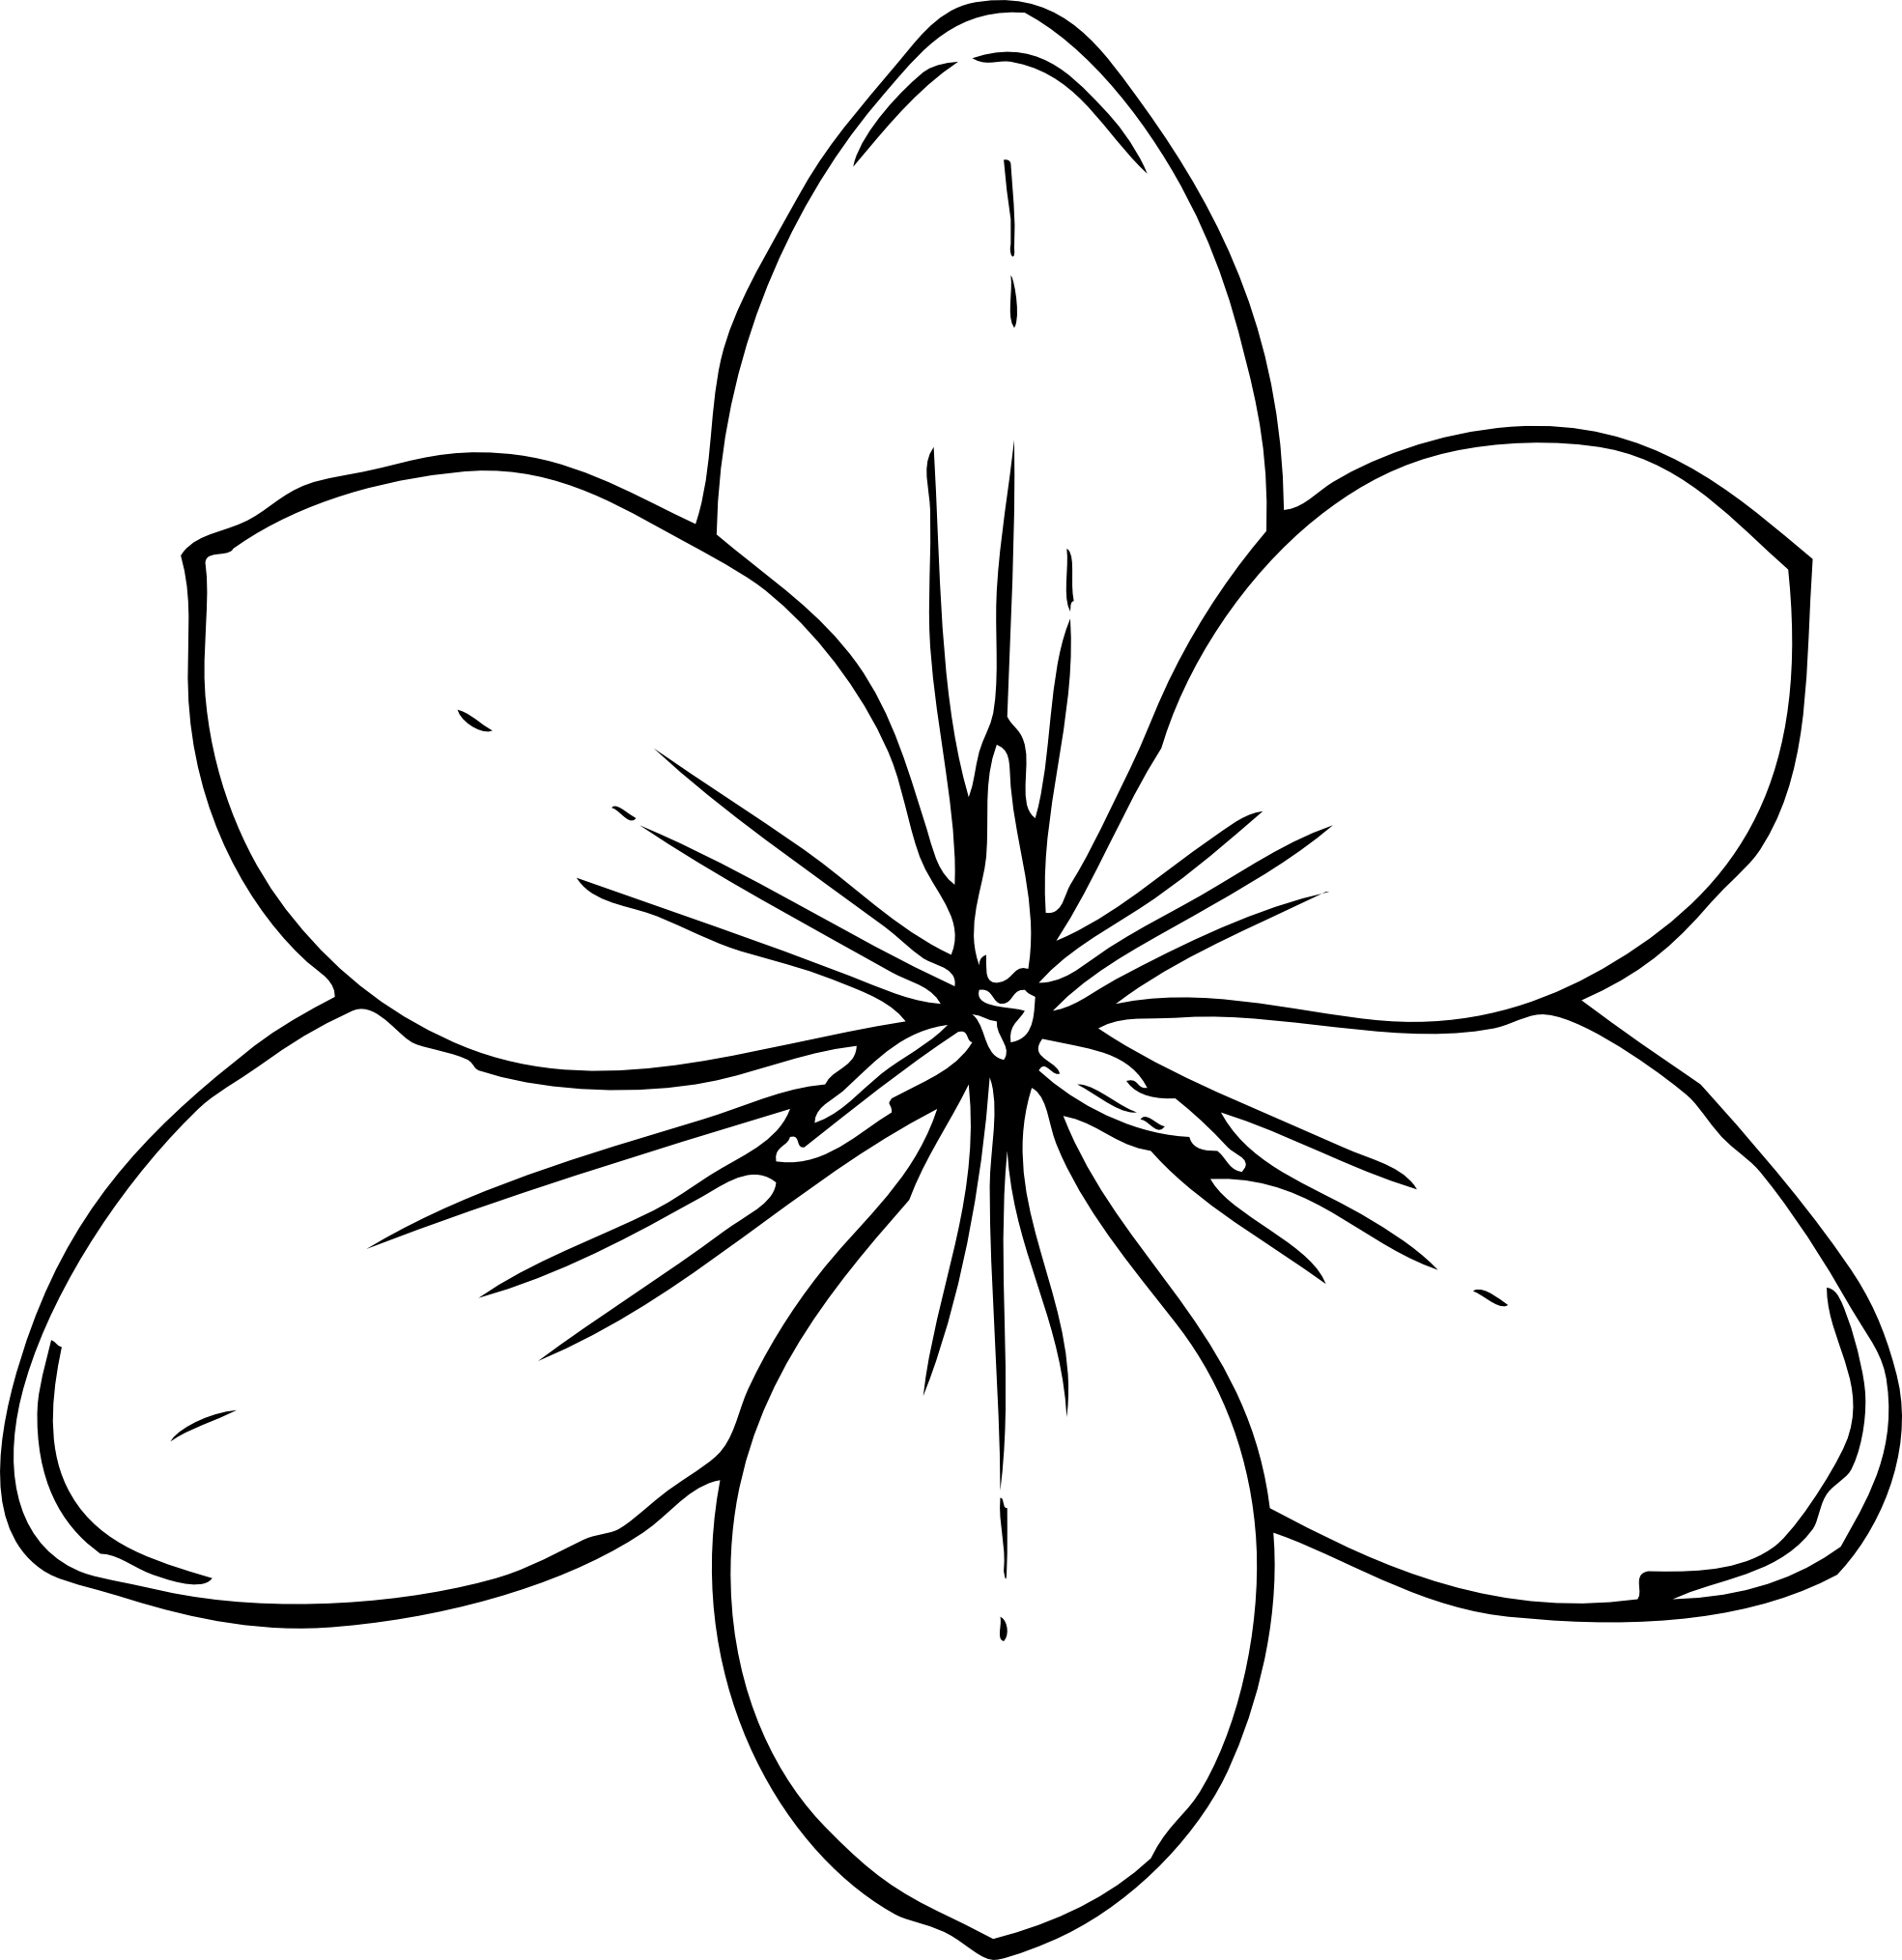 Fake drawing flower. Jasmine at getdrawings com